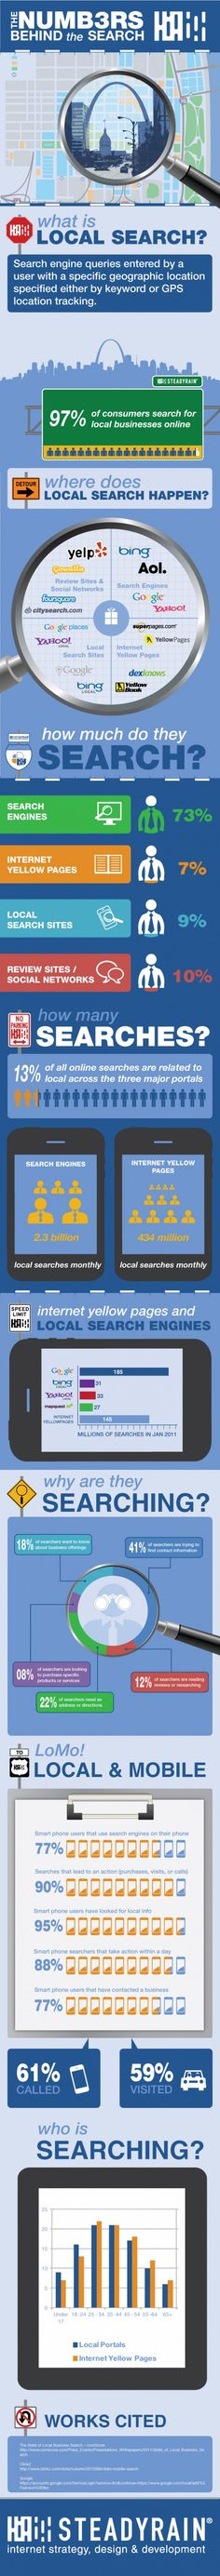 #Local #Search... sometimes is so difficult to explain... (#infographic)